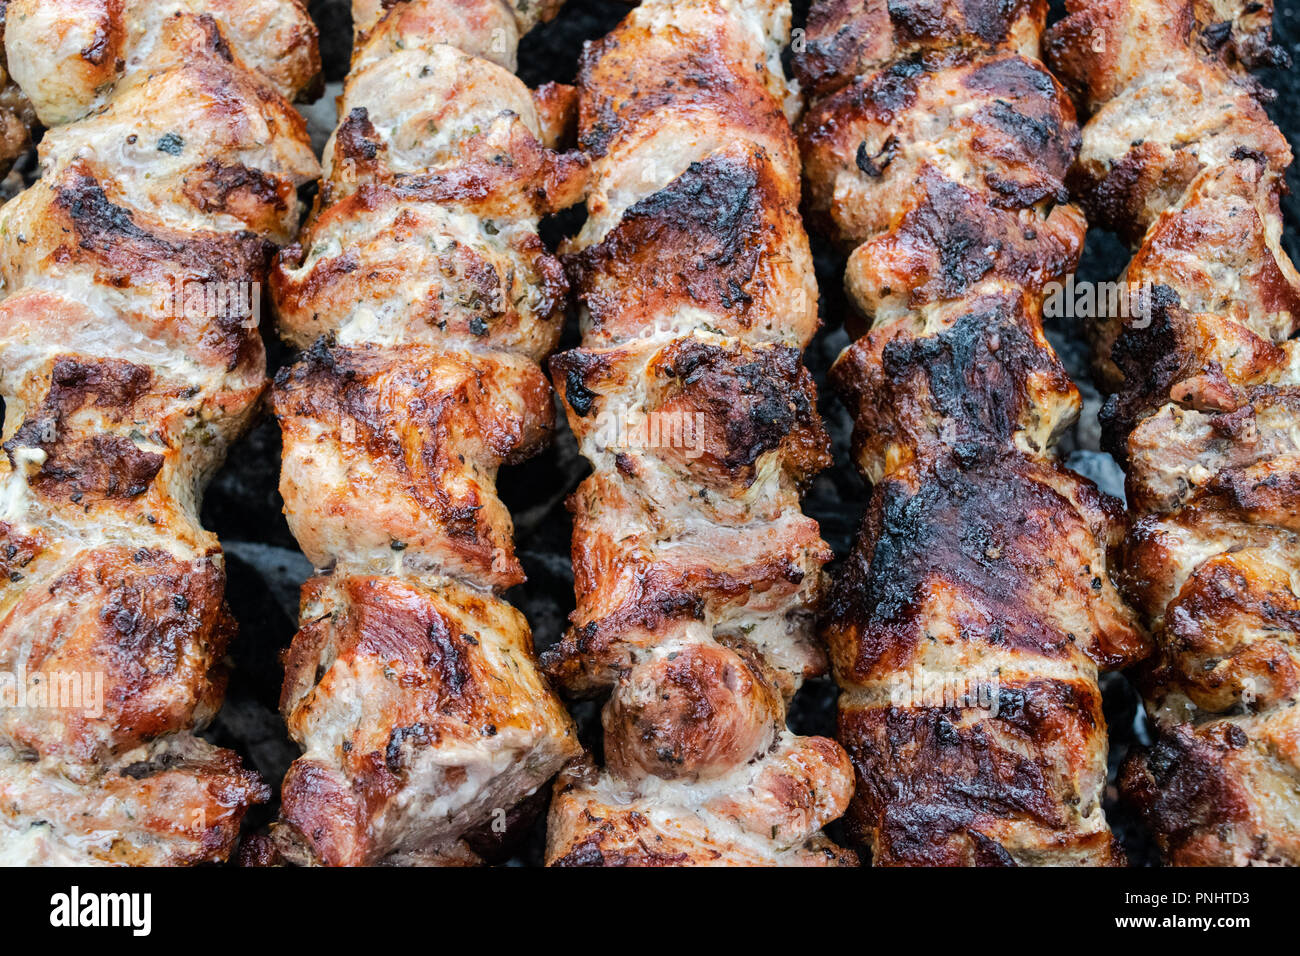 Where it is possible to fry shish kebabs